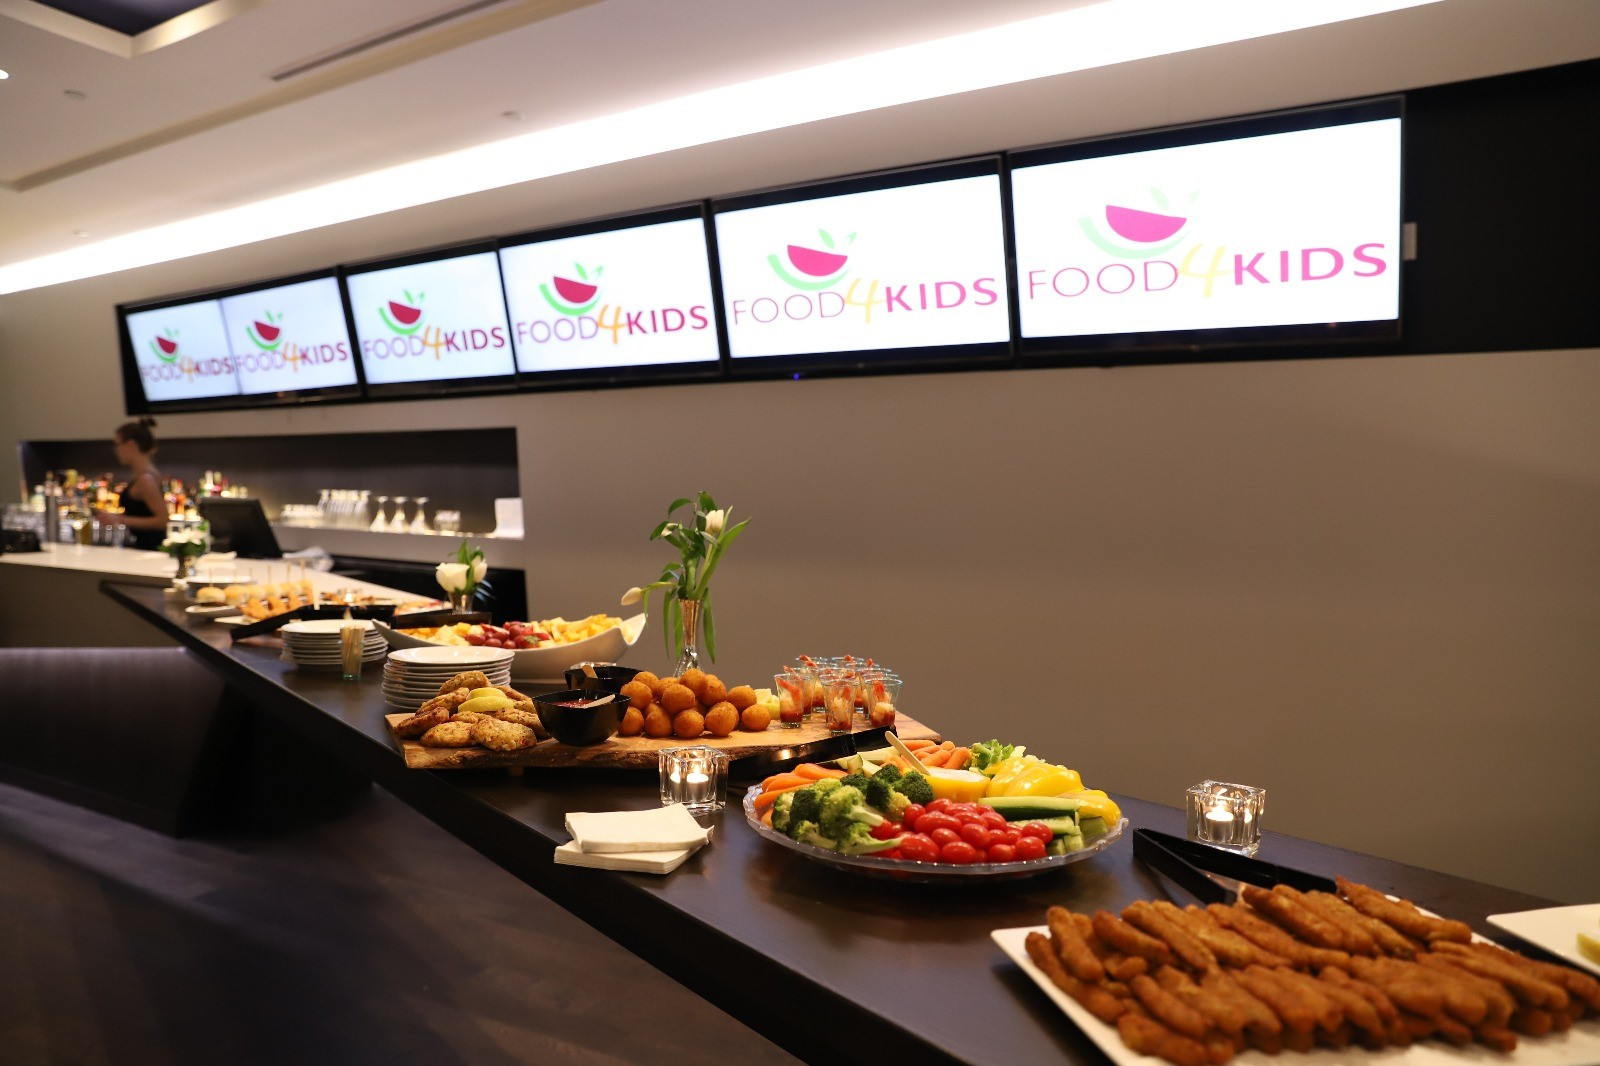 Food4KidsMissLaunch_12.jpg